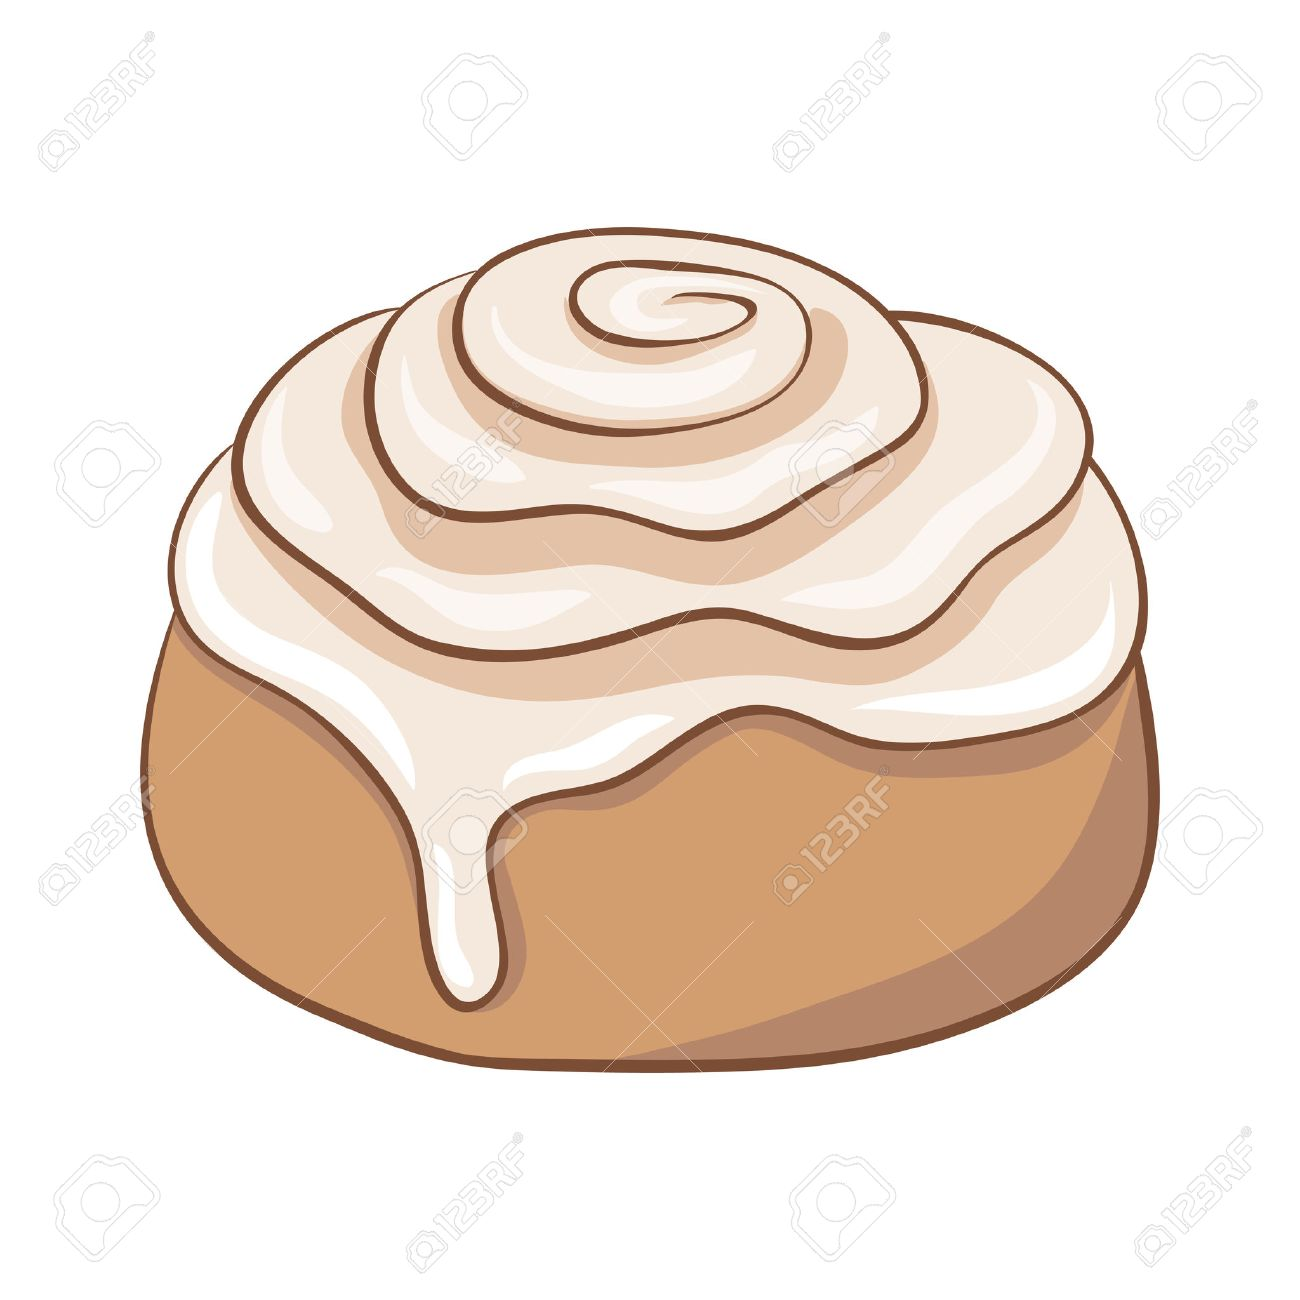 Freshly baked cinnamon roll with sweet frosting. Vector illustration..